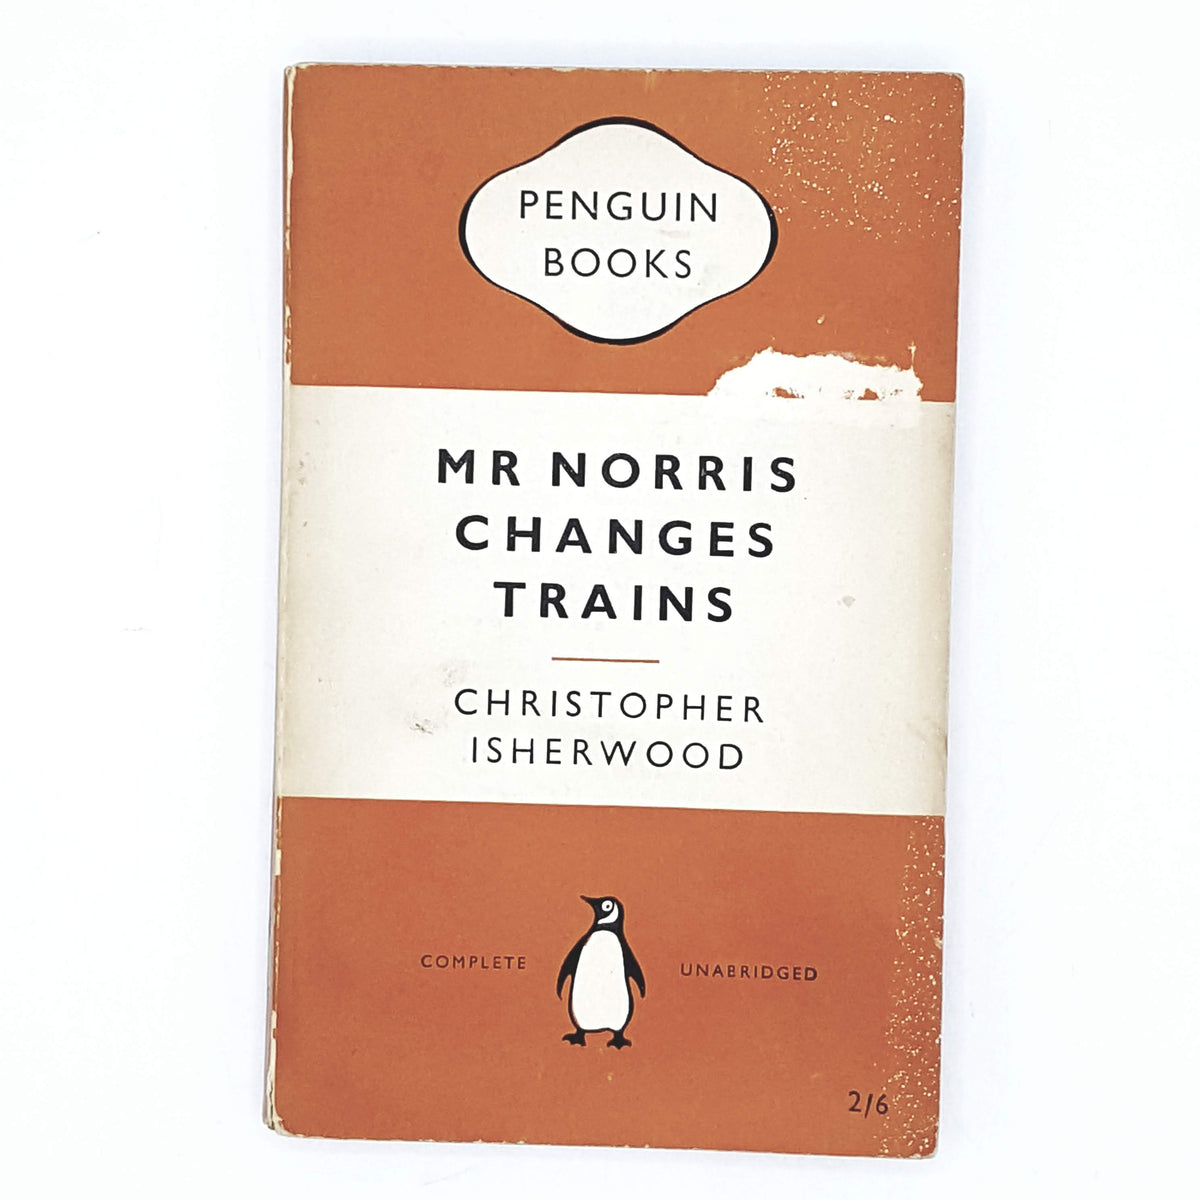 Mr Norris Changes Trains by Christopher Isherwood 1955